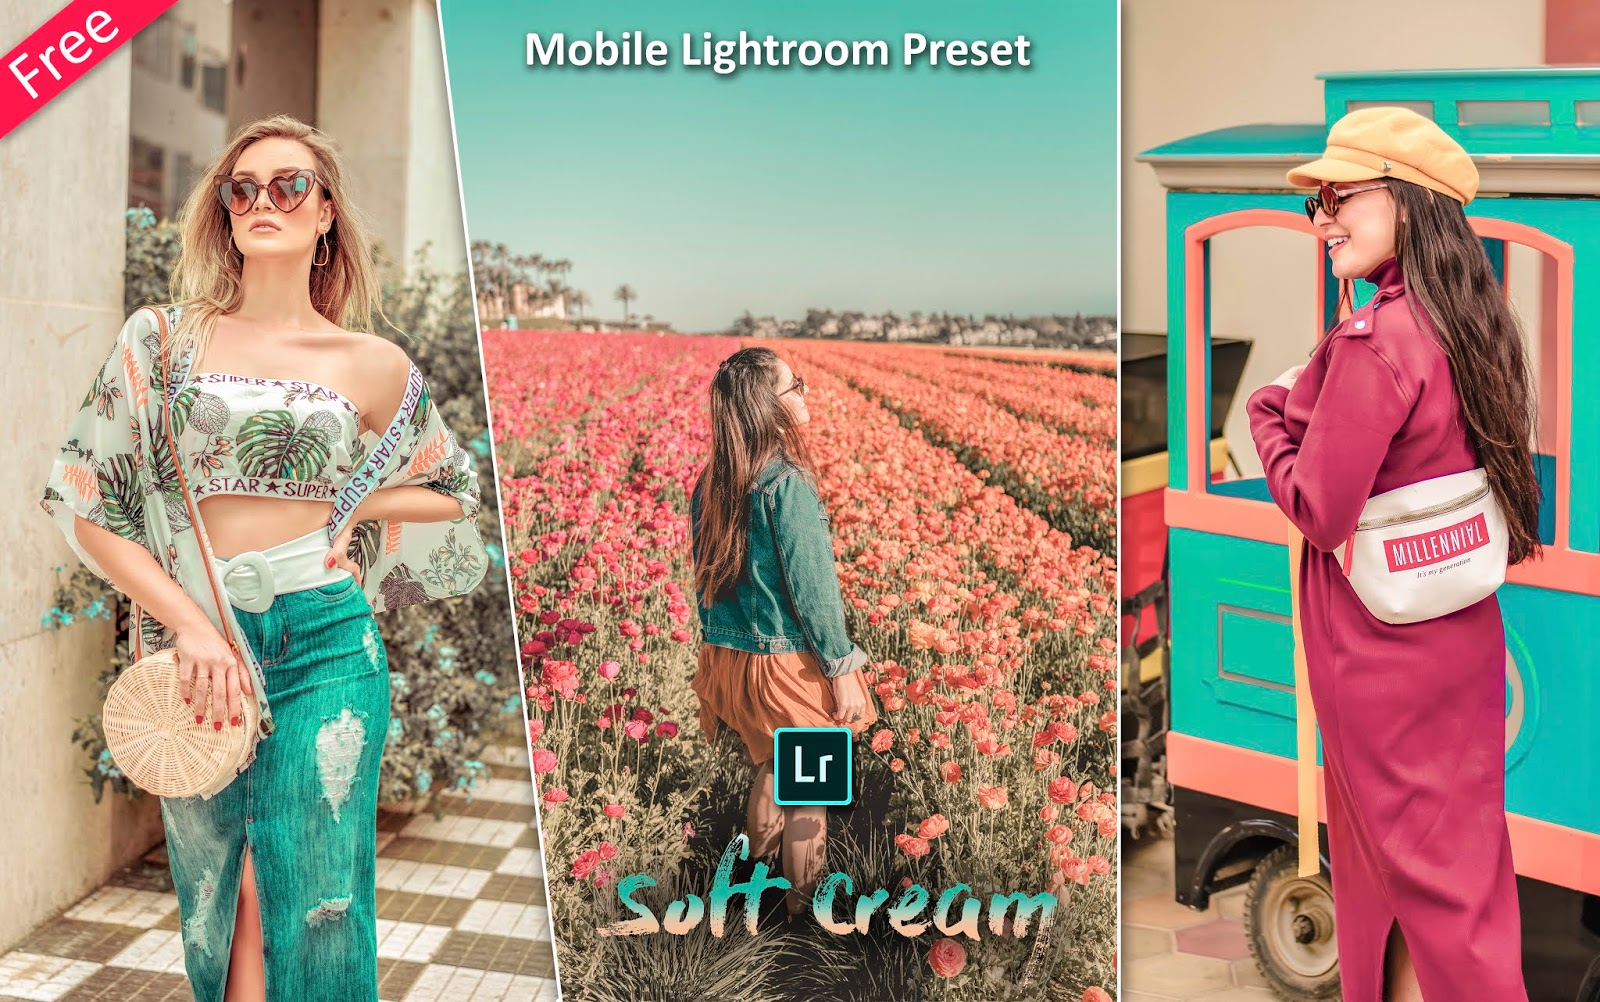 Soft Cream Mobile Lightroom Preset for Free | How to Edit Photos Like Soft Cream Effect in Mobile Lightroom App